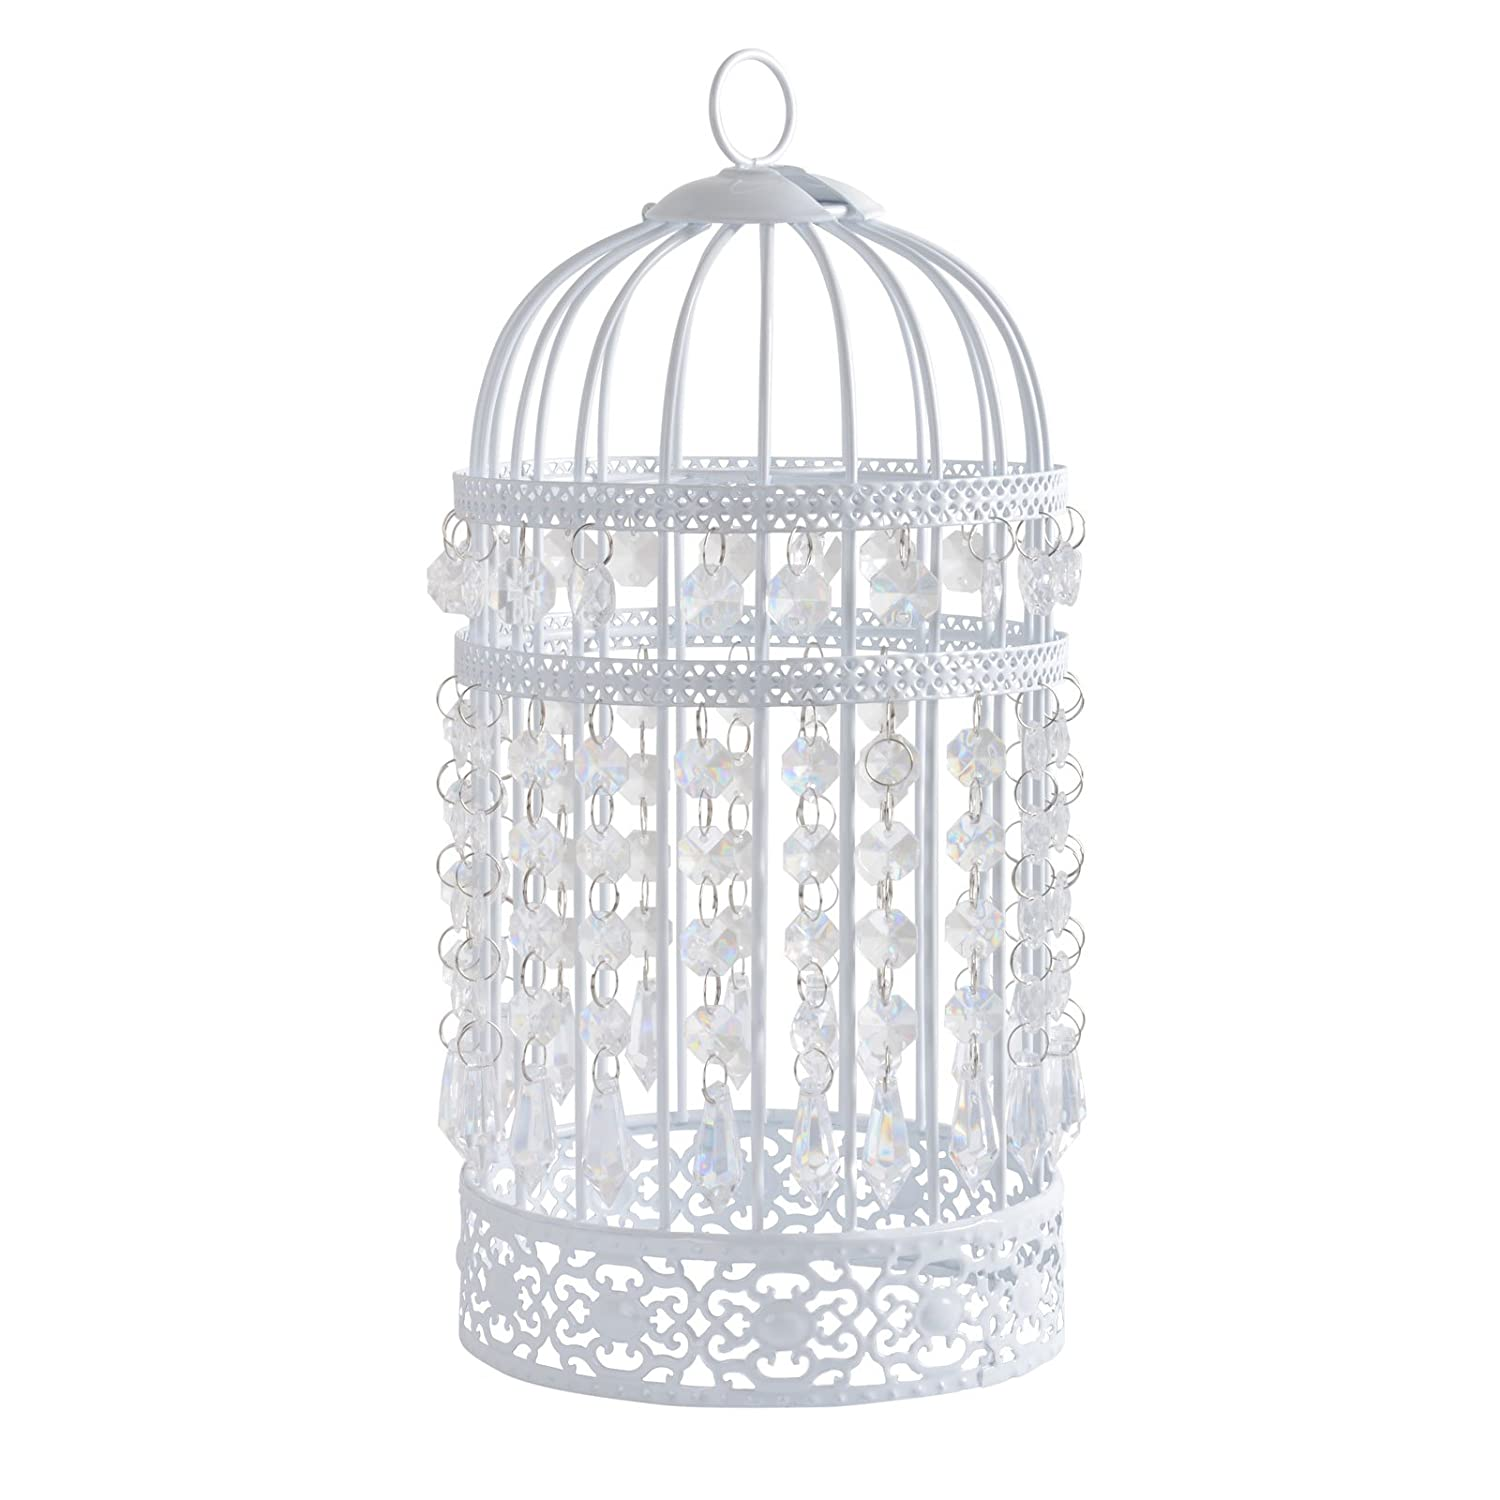 Cream Metal Ornate Shabby Chic 4 Way Birdcage Chandelier Ceiling